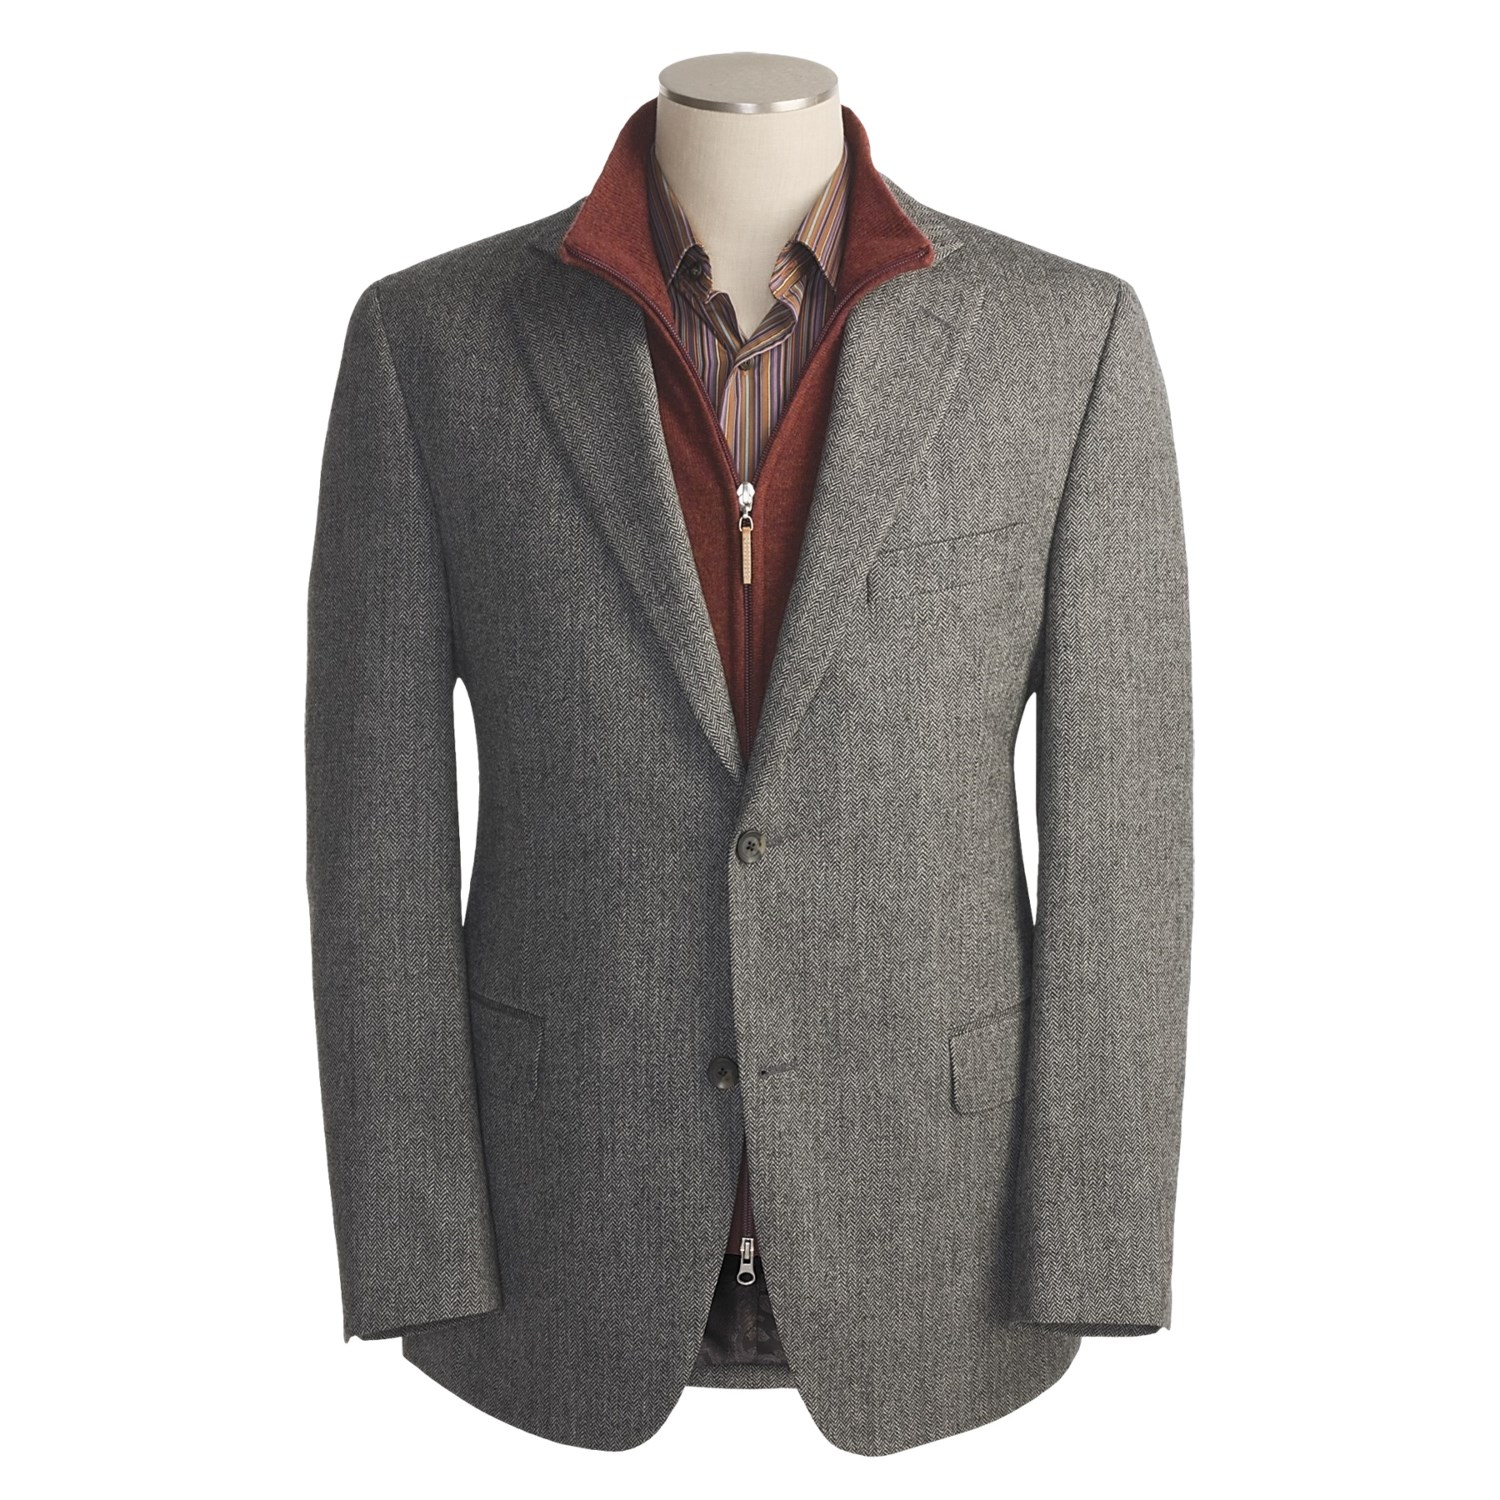 When the occasion calls for a traditional, handsome look, our herringbone sport coat fits the bill. Named for the quintessentially Scottish border town of Langholm, our jacket is constructed of fine, pure wool from Scotland, fully lined for a smooth fit over a sweater vest or dress shirt.